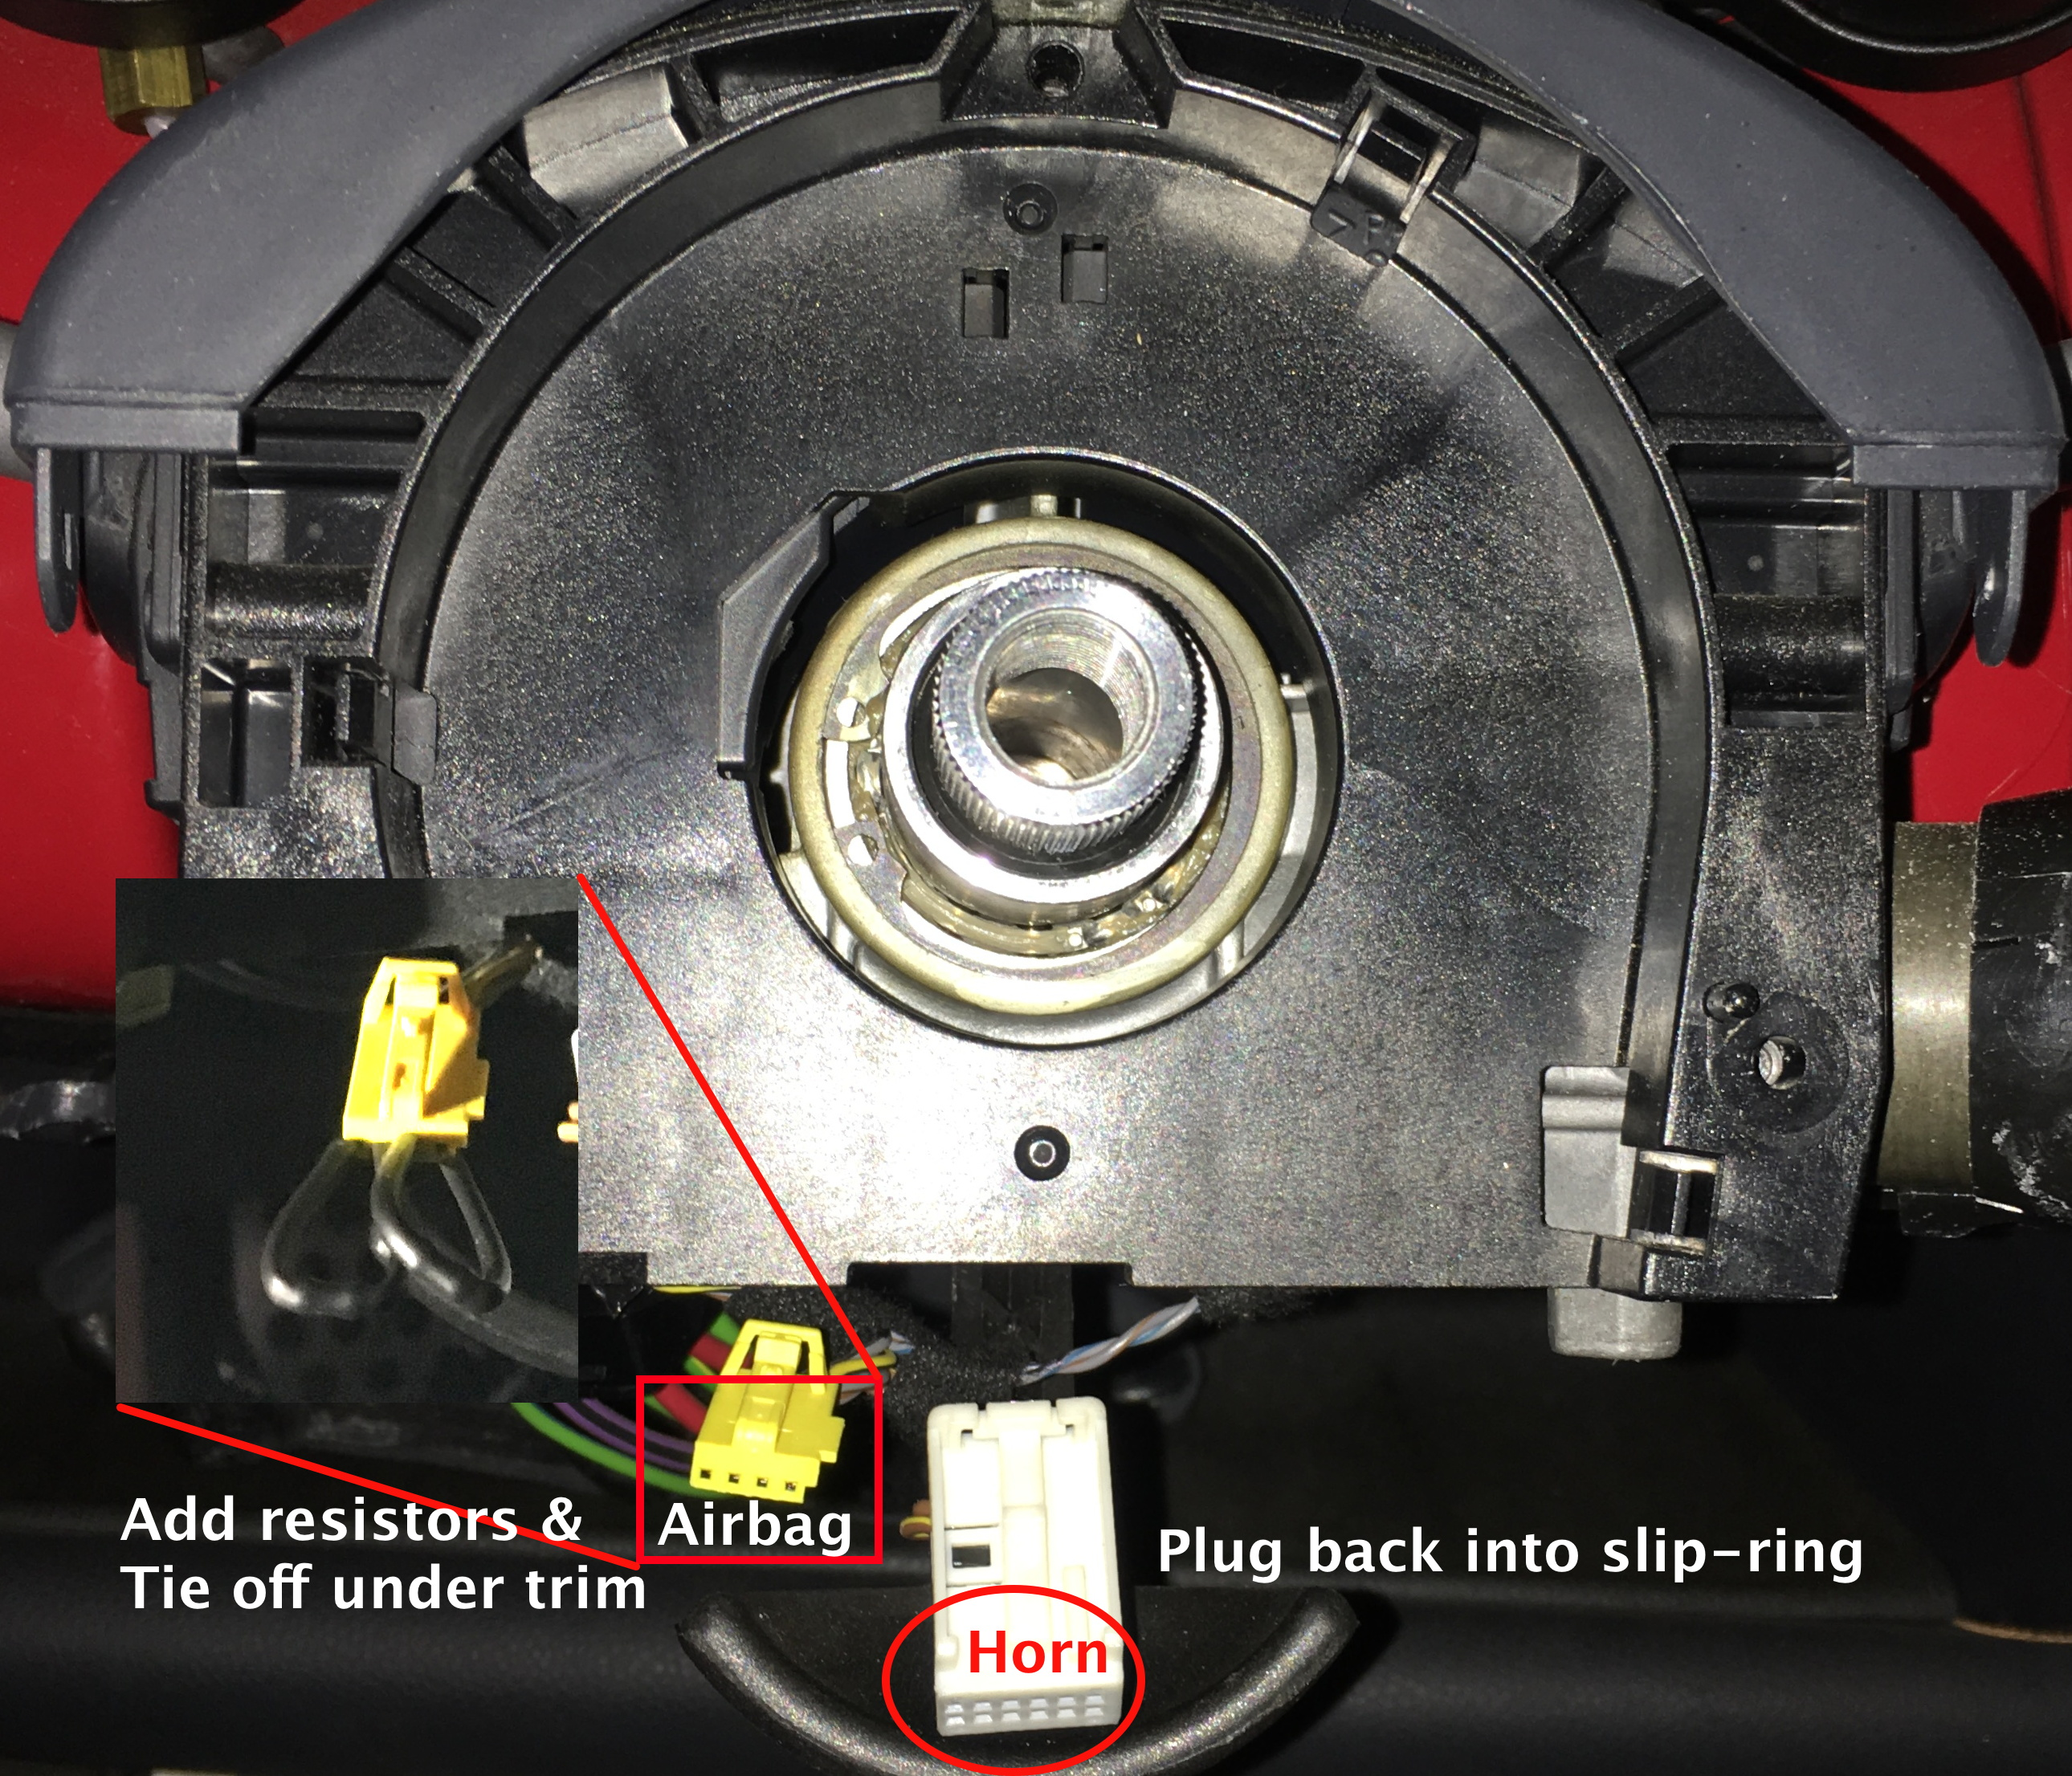 Mini Aftermarket Steering Wheel Qr Install Diy Georgeco Specr53 Blog Cooper Airbag Wiring Diagram Together With S Before You The Hub Place Two Resistors Into Connector Formerly Plugged Slip Ring And Zip Tie It Back Out Of Way